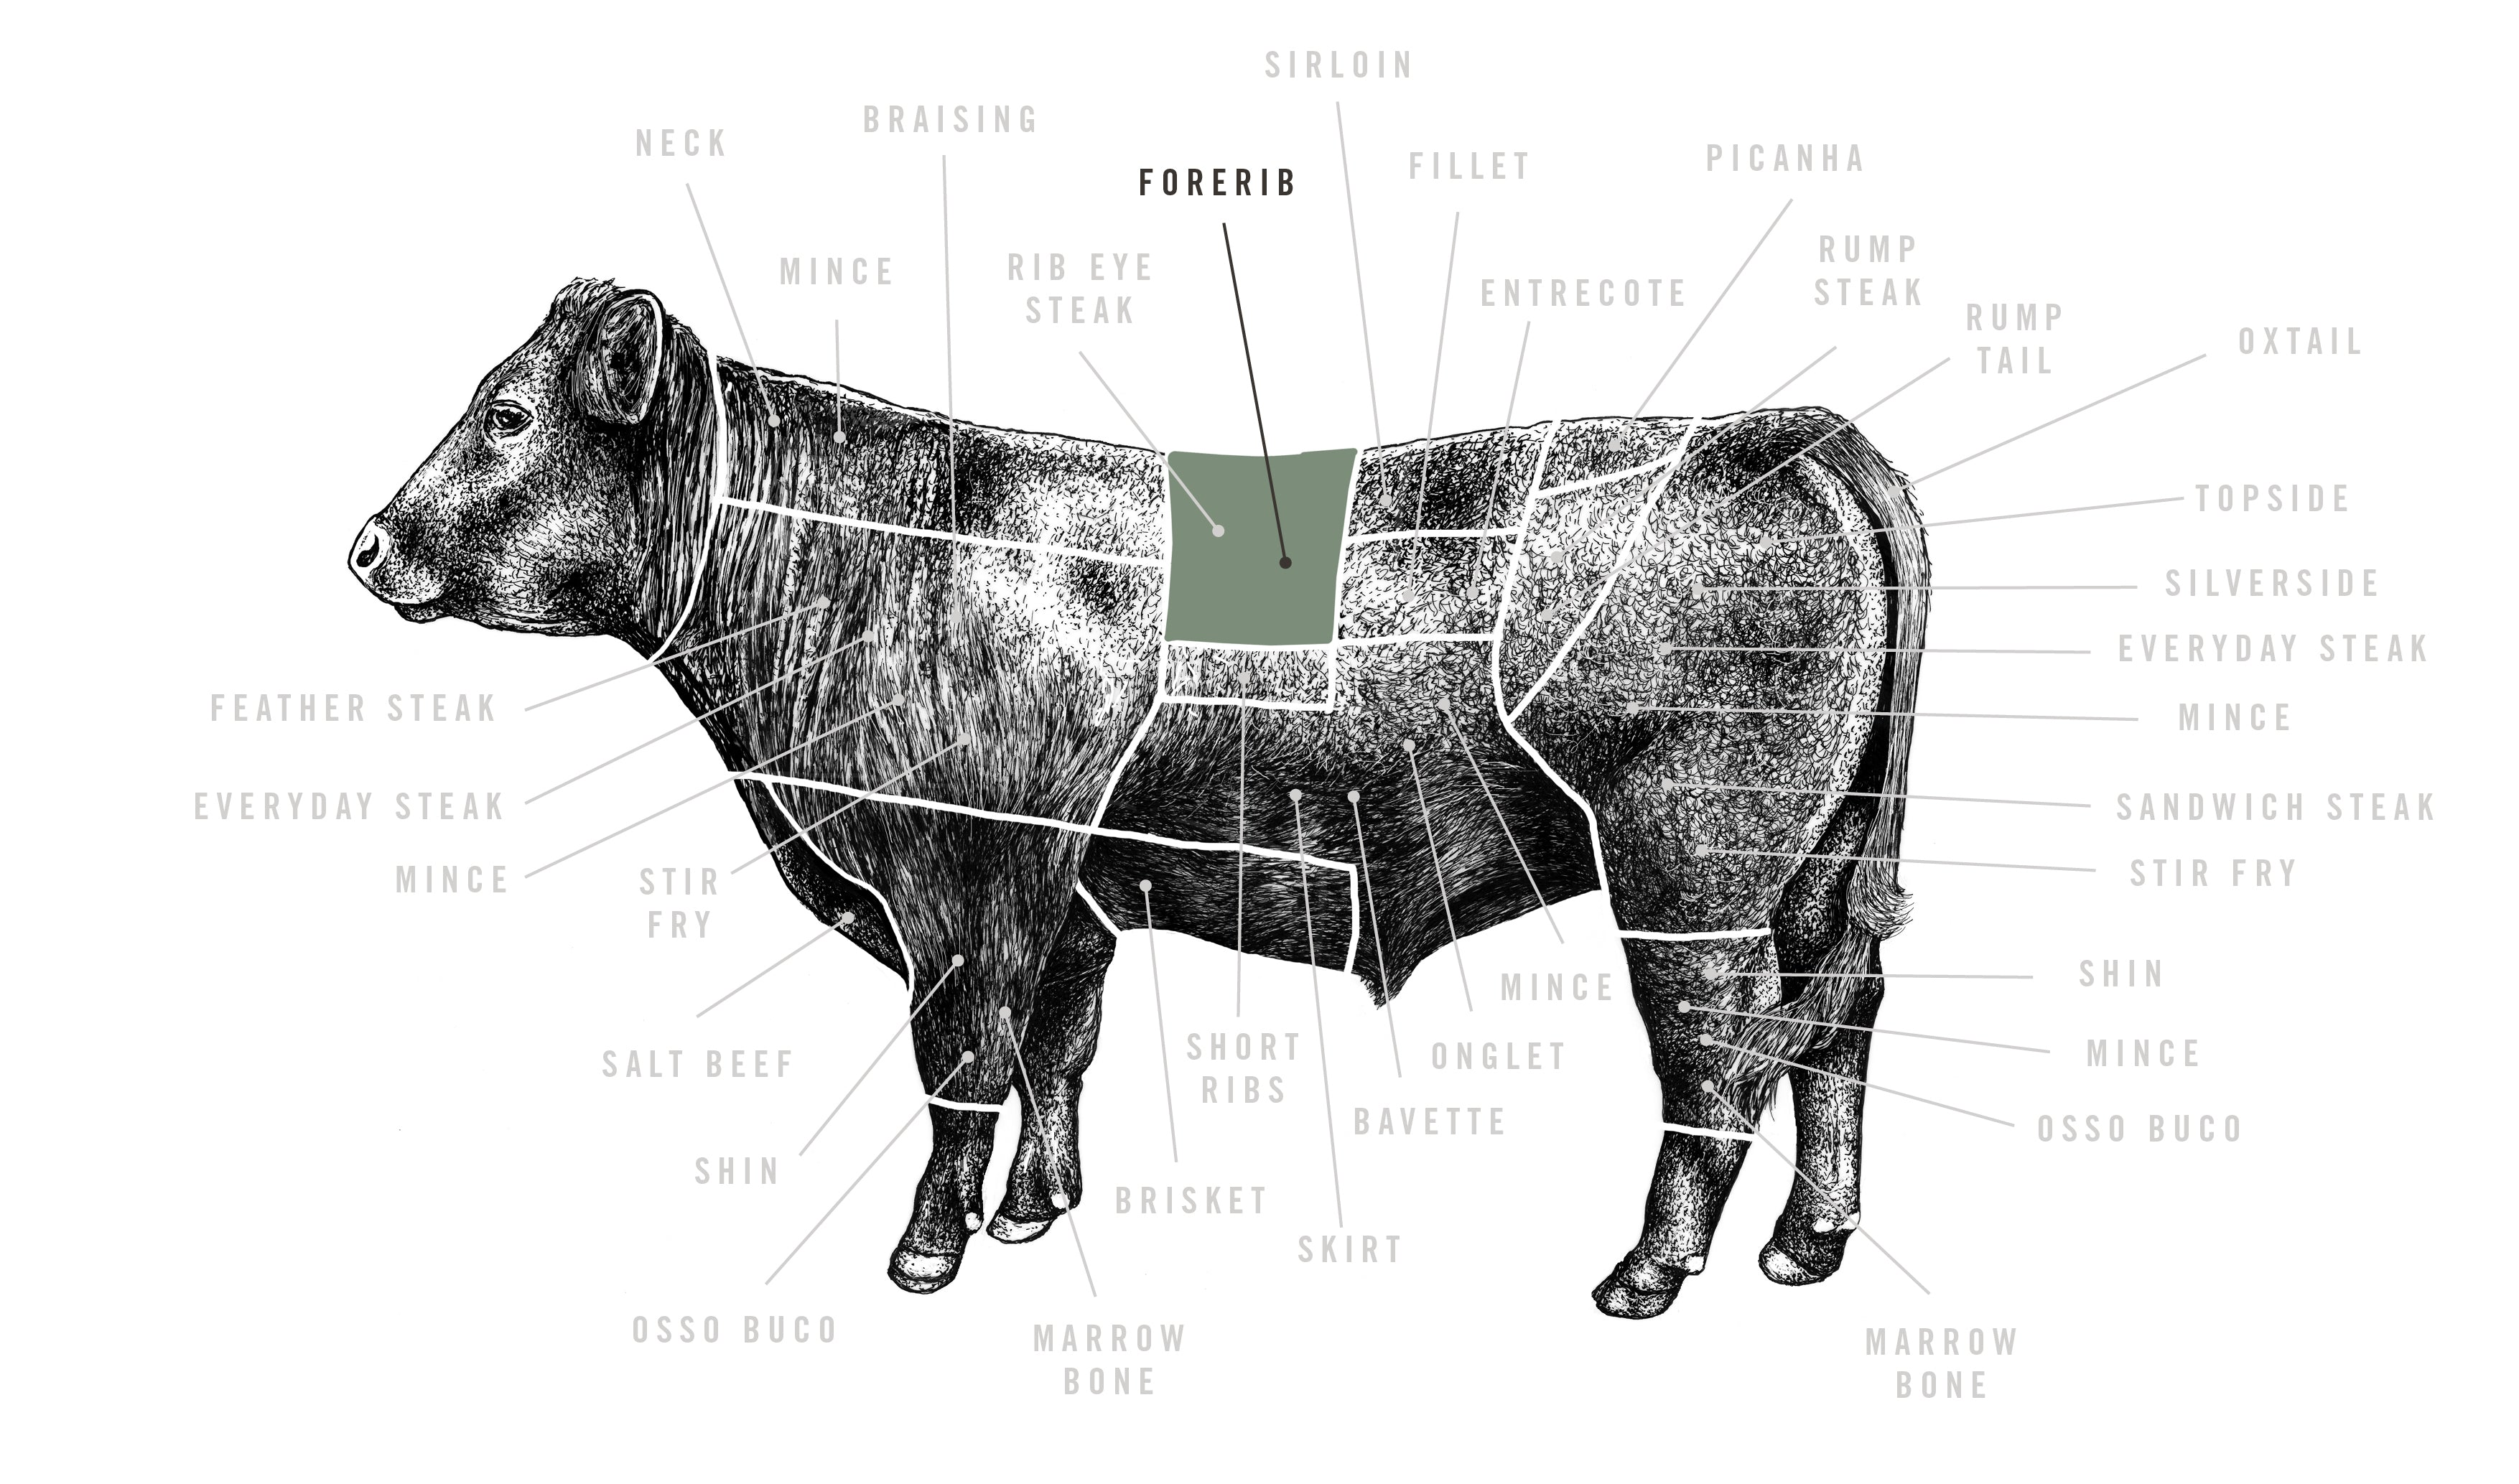 Grass Fed Rib of Beef meat cuts diagram